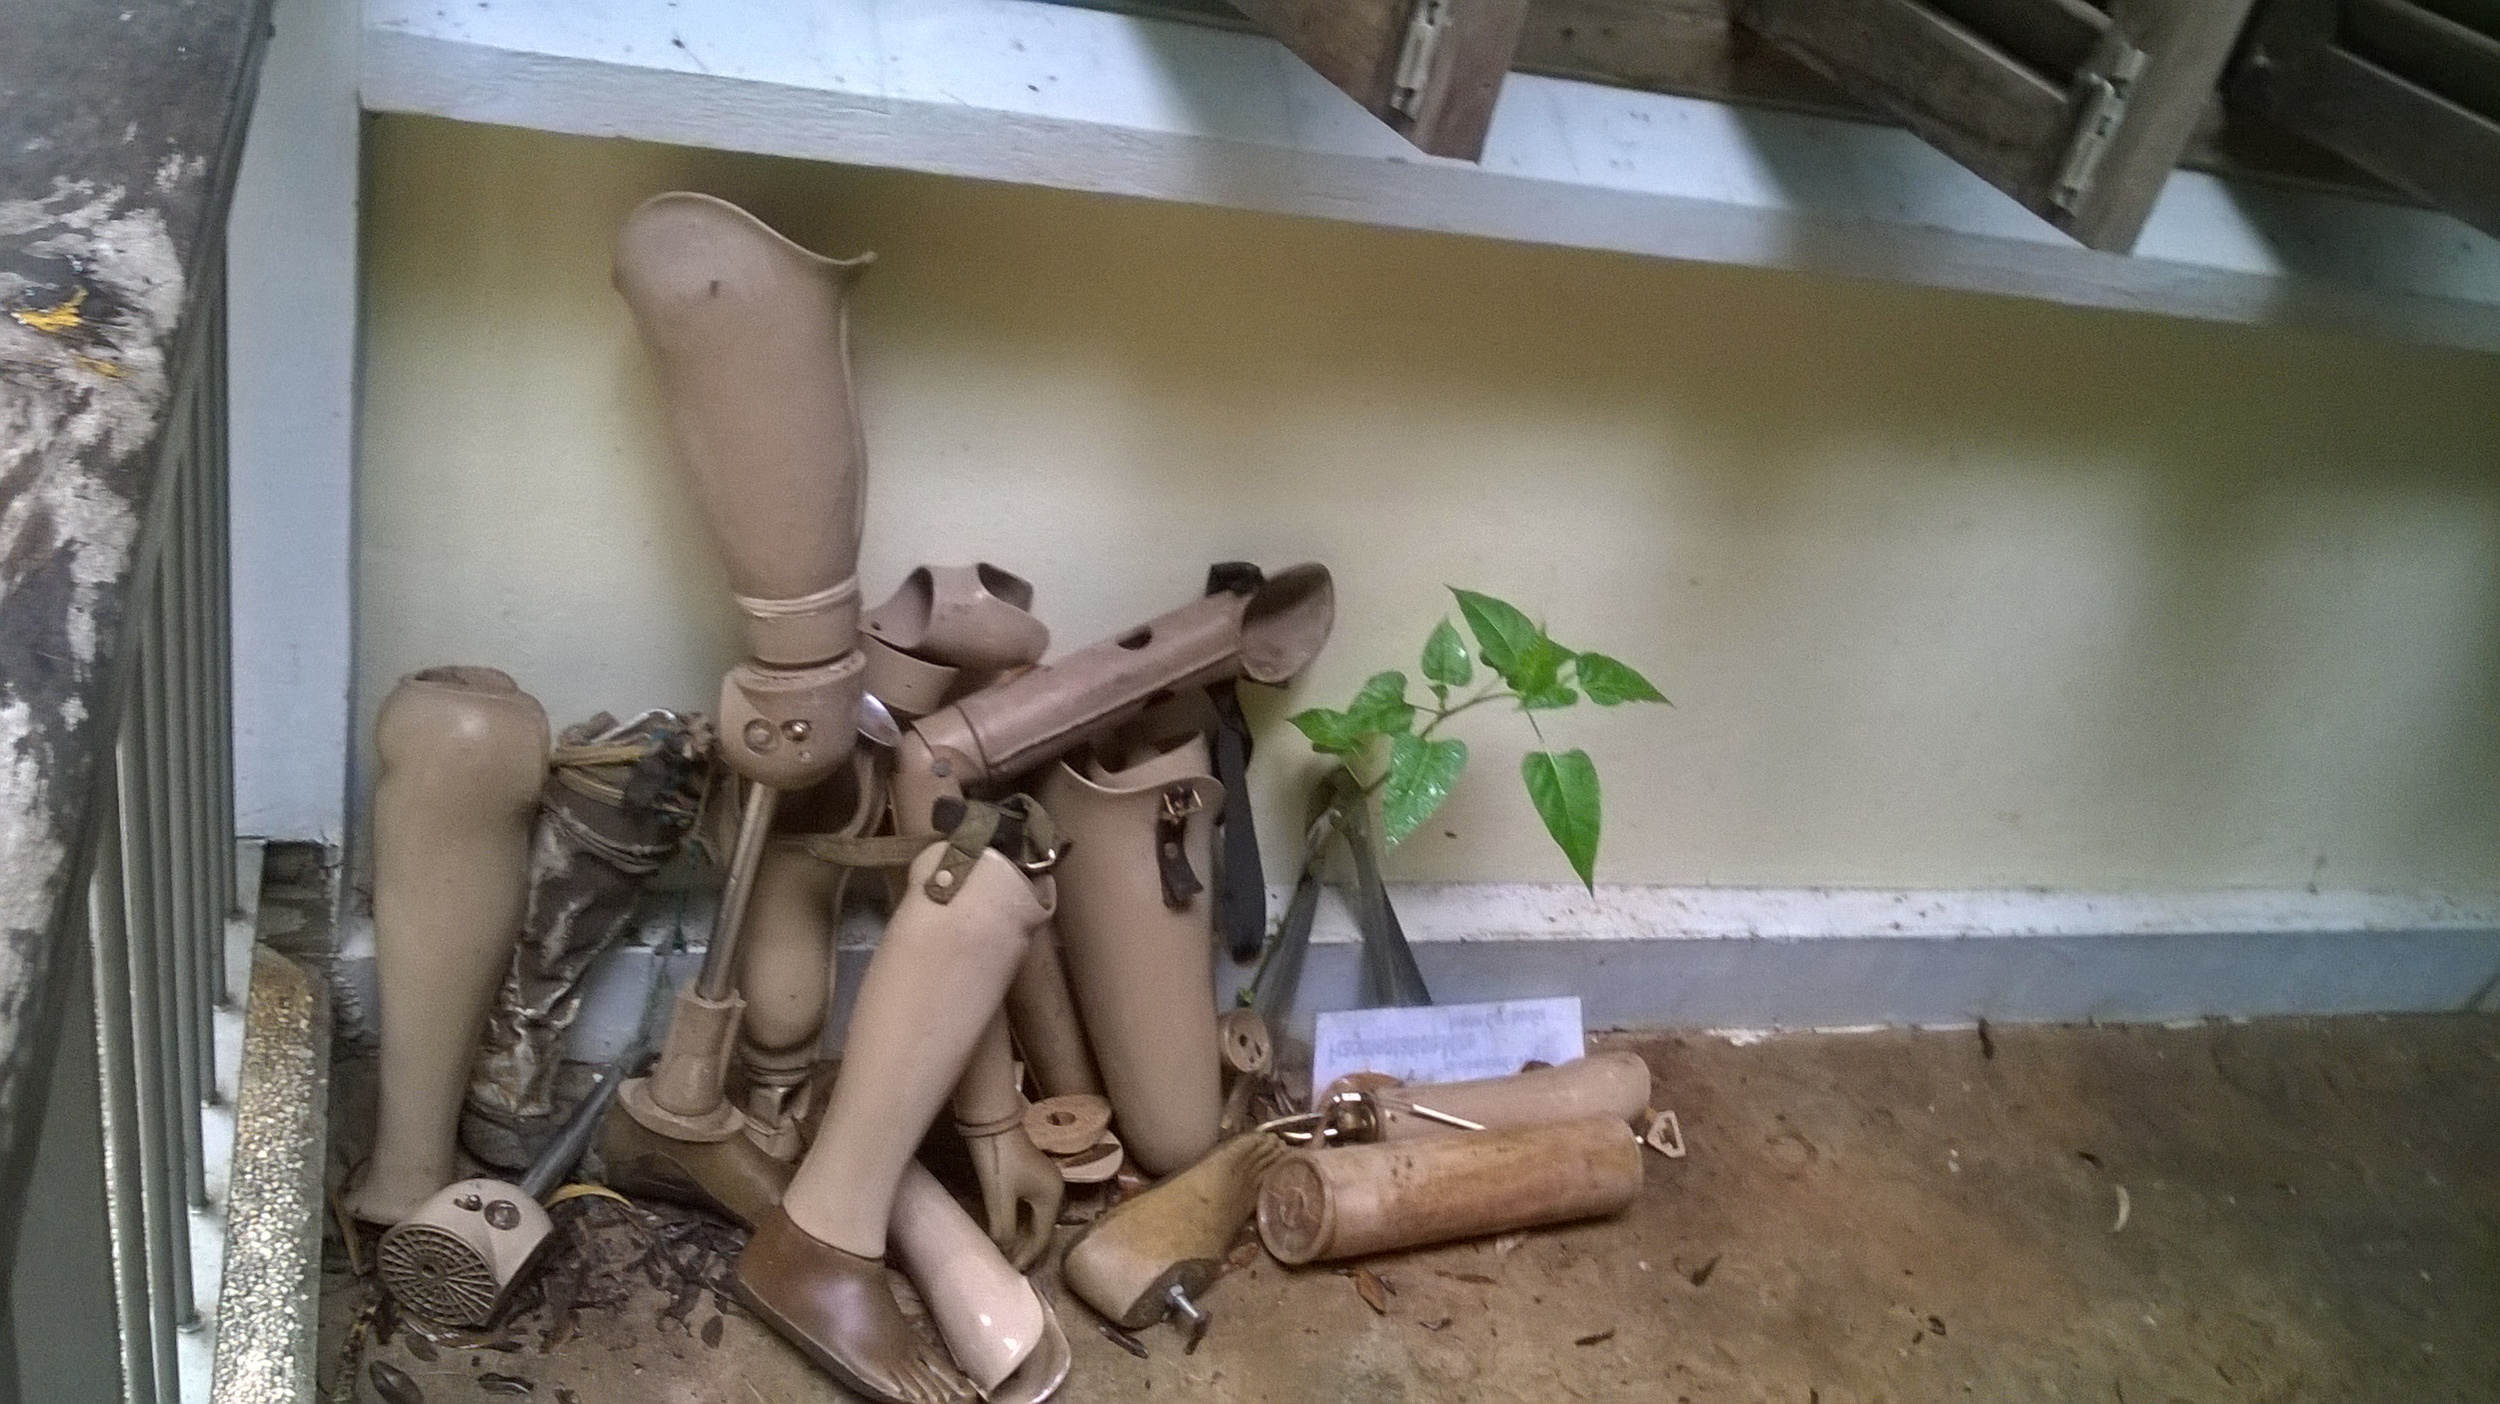 Prosthetic legs and feet at the Cambodian Landmine Museum outside Siem Reap.